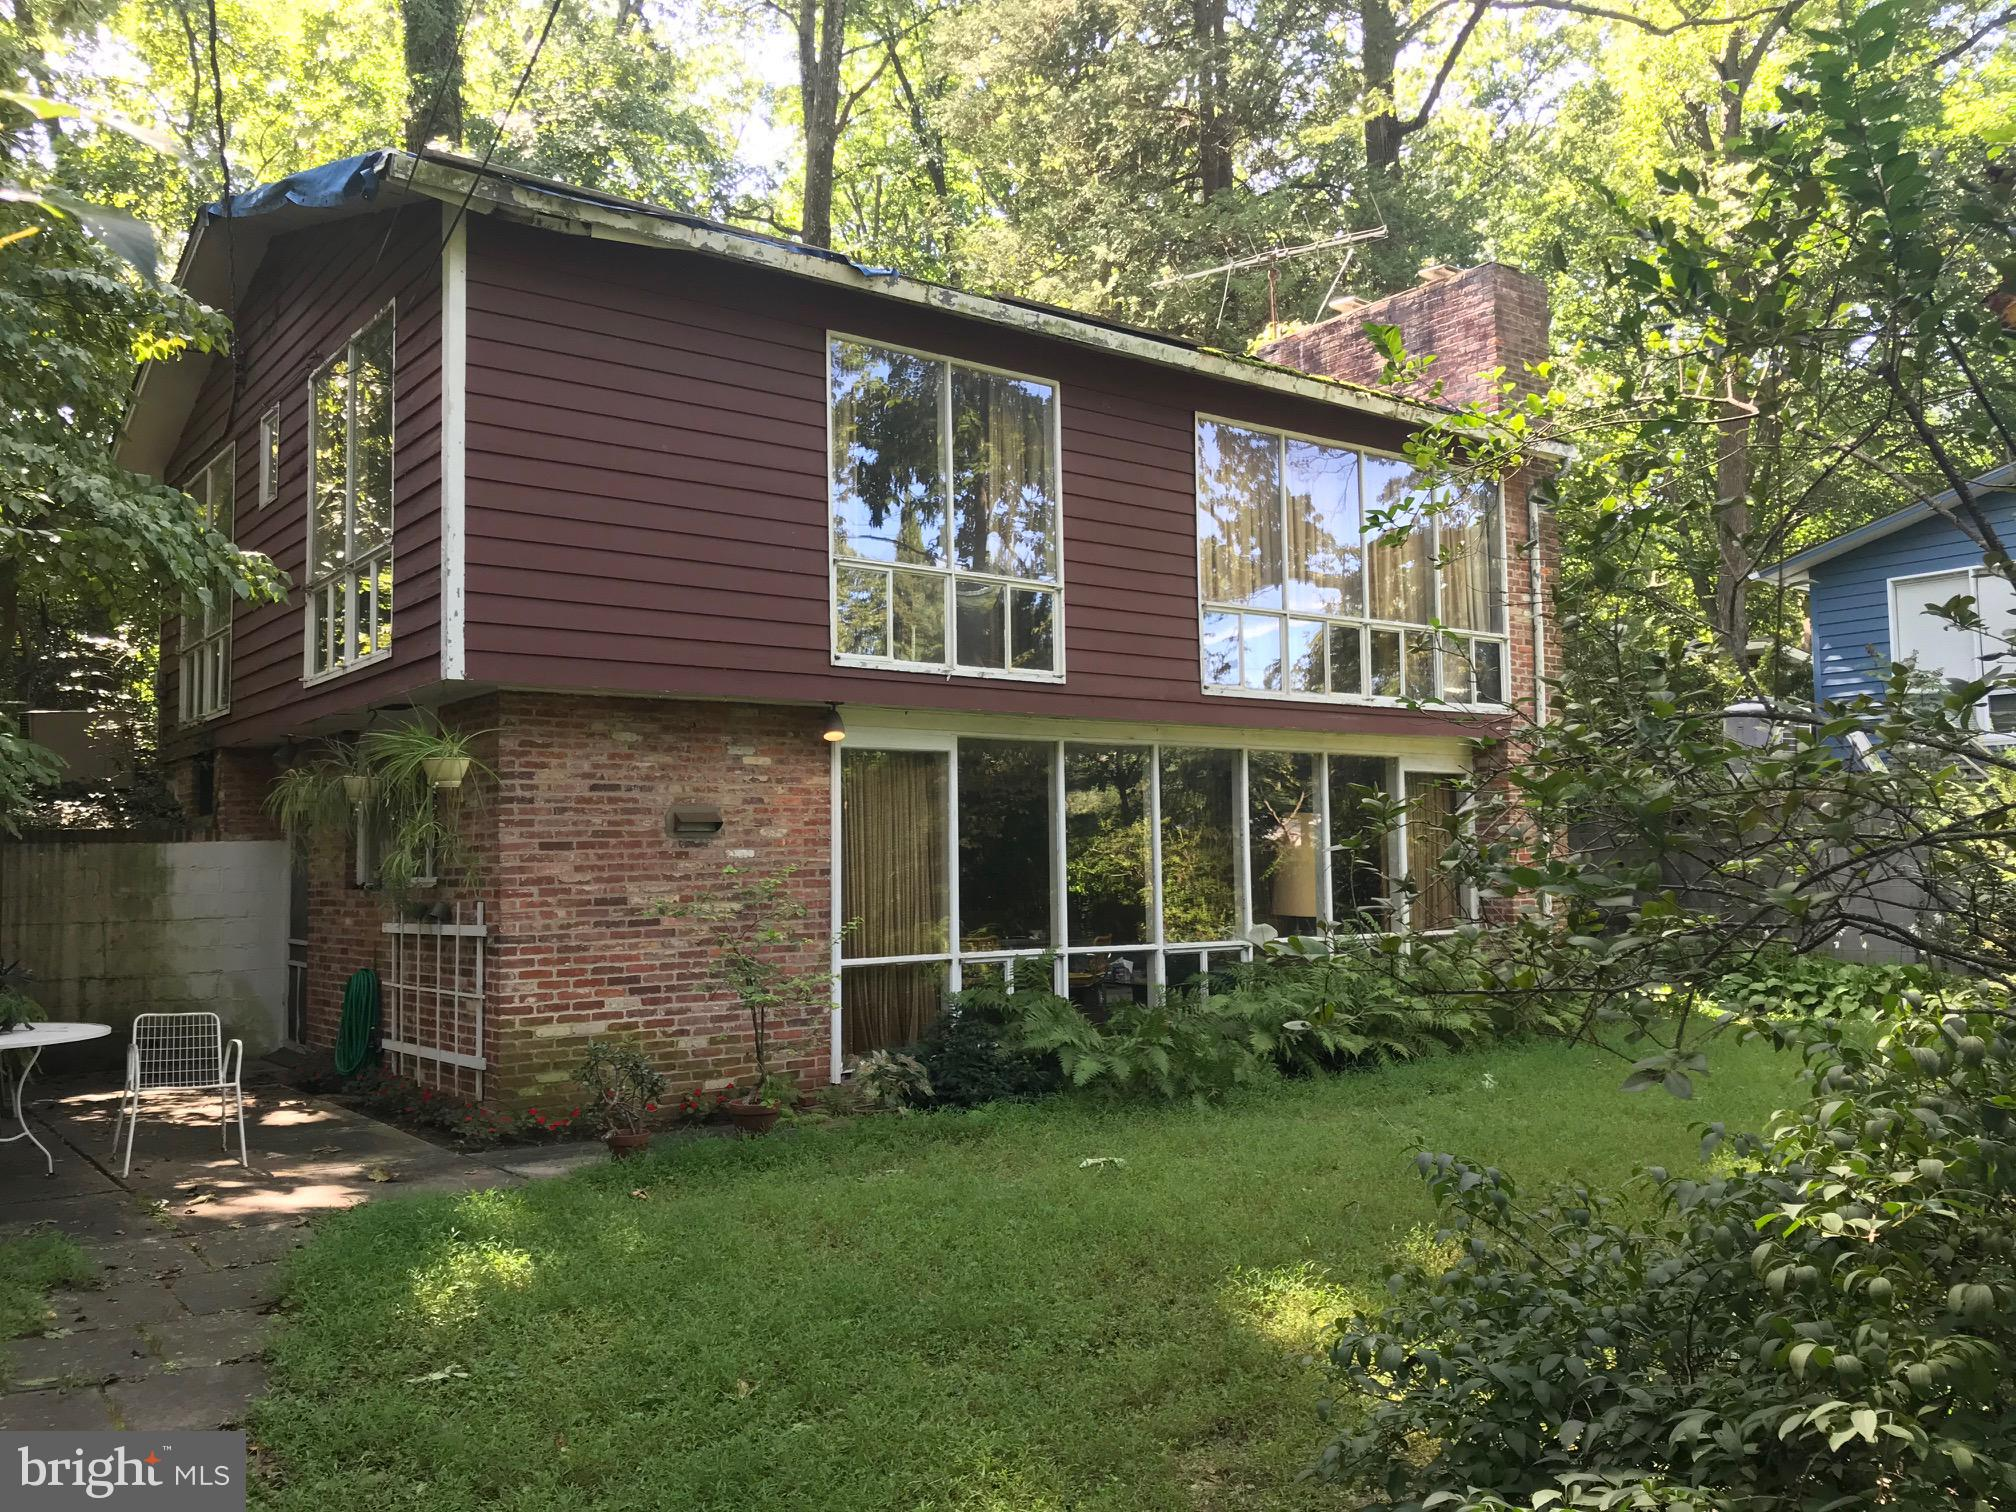 11538 HIGHVIEW AVENUE, SILVER SPRING, Maryland 20902, 3 Bedrooms Bedrooms, ,2 BathroomsBathrooms,Single Family,For Sale,11538 HIGHVIEW AVENUE,MDMC731828